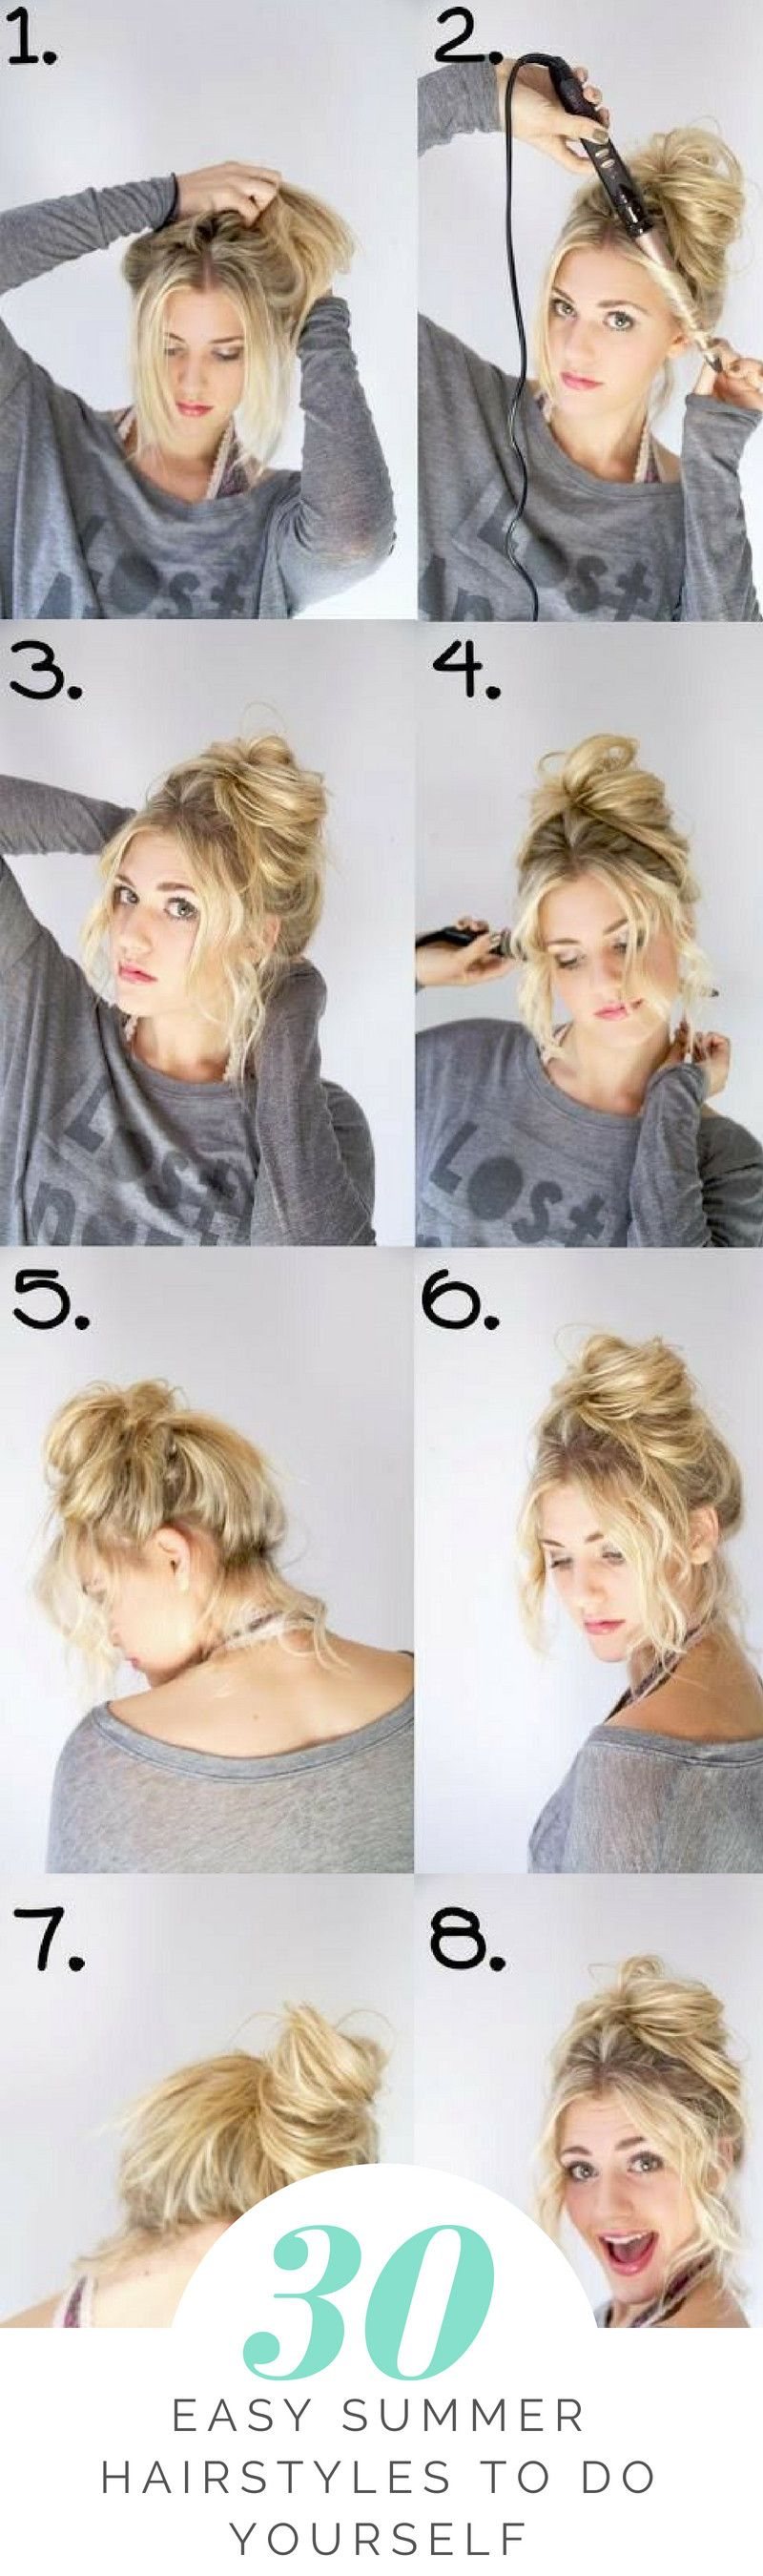 easy summer hairstyles to do yourself hairstyles pinterest